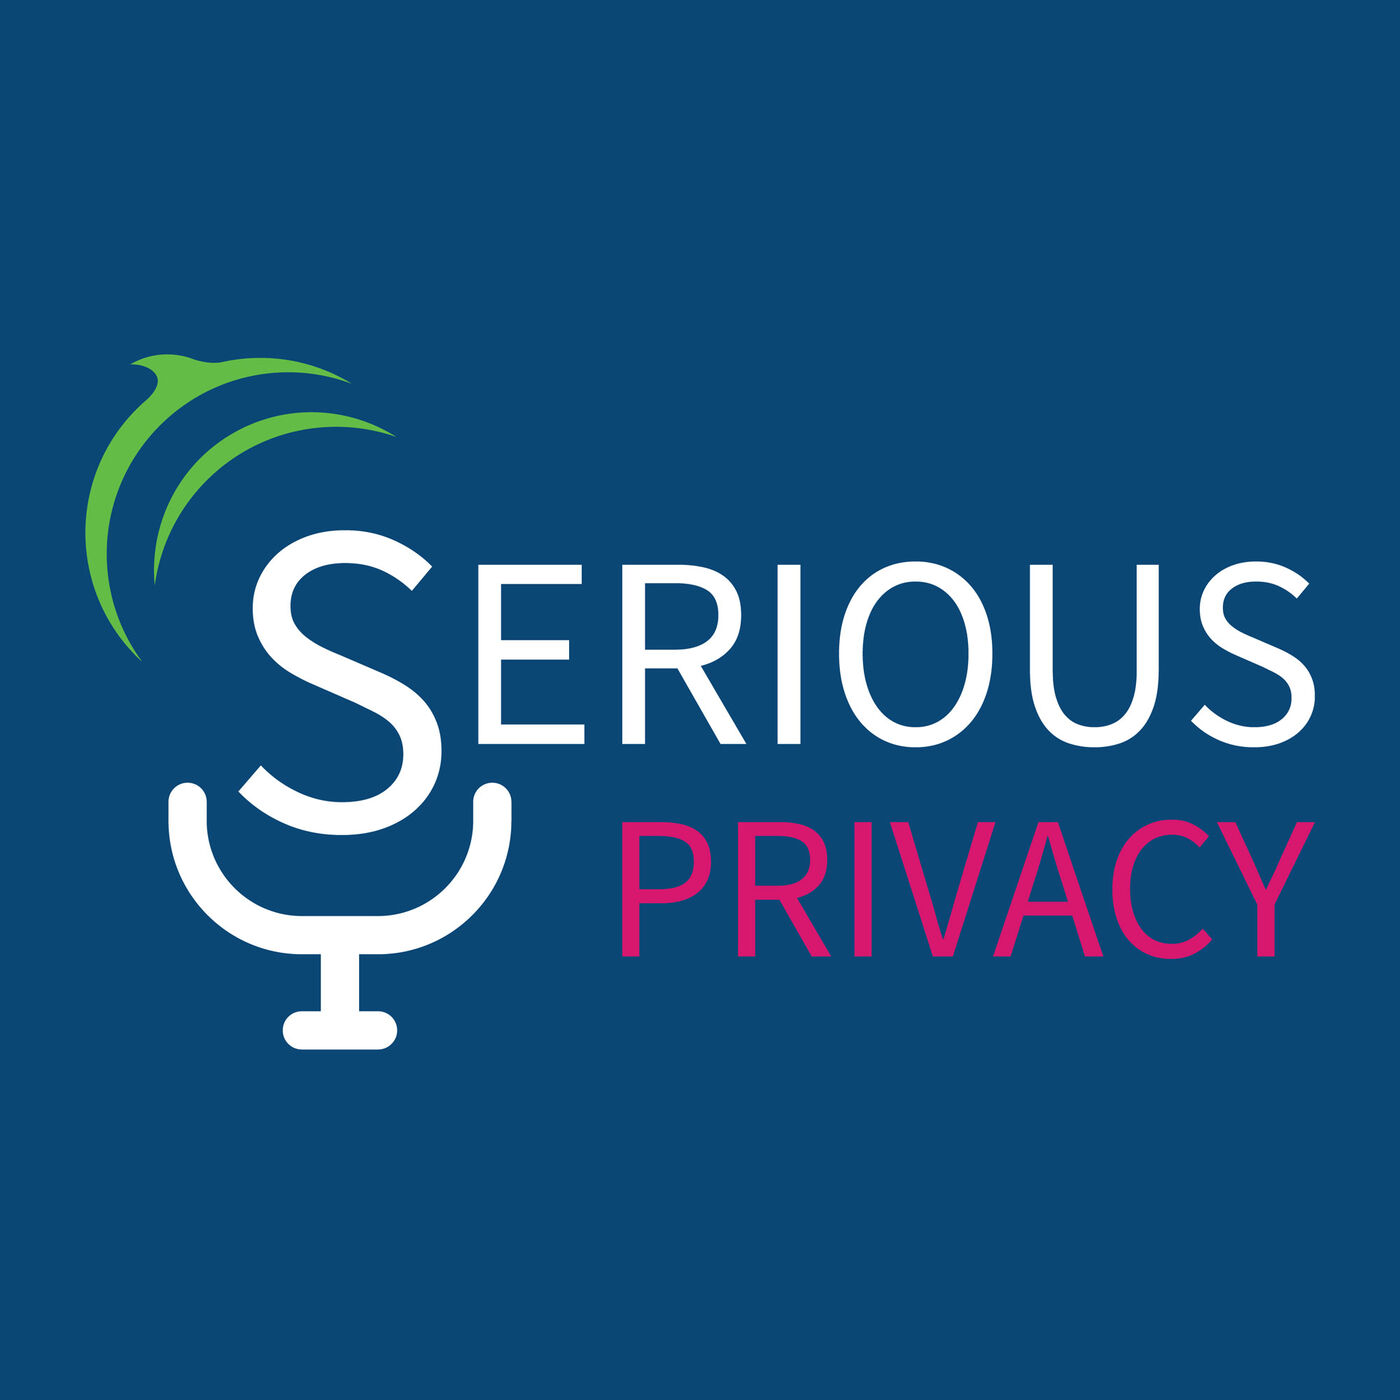 Privacy Connection: Election, Protection, and more